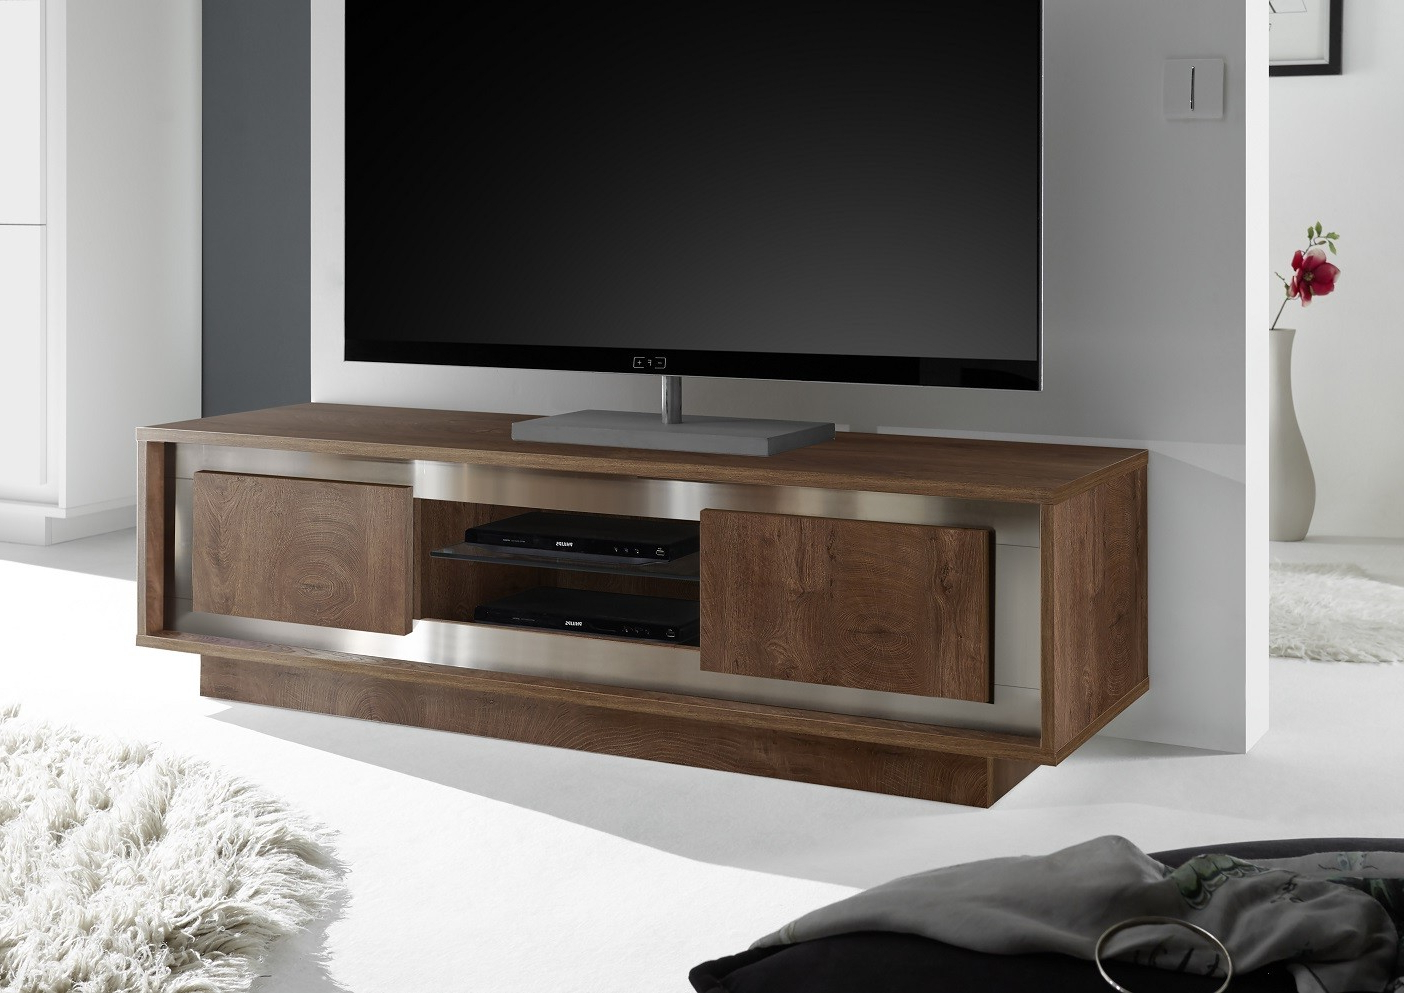 Newest White & Black Gloss Tv Units, Stands And Cabinets (41) – Sena Home With Regard To Contemporary Oak Tv Stands (View 11 of 20)